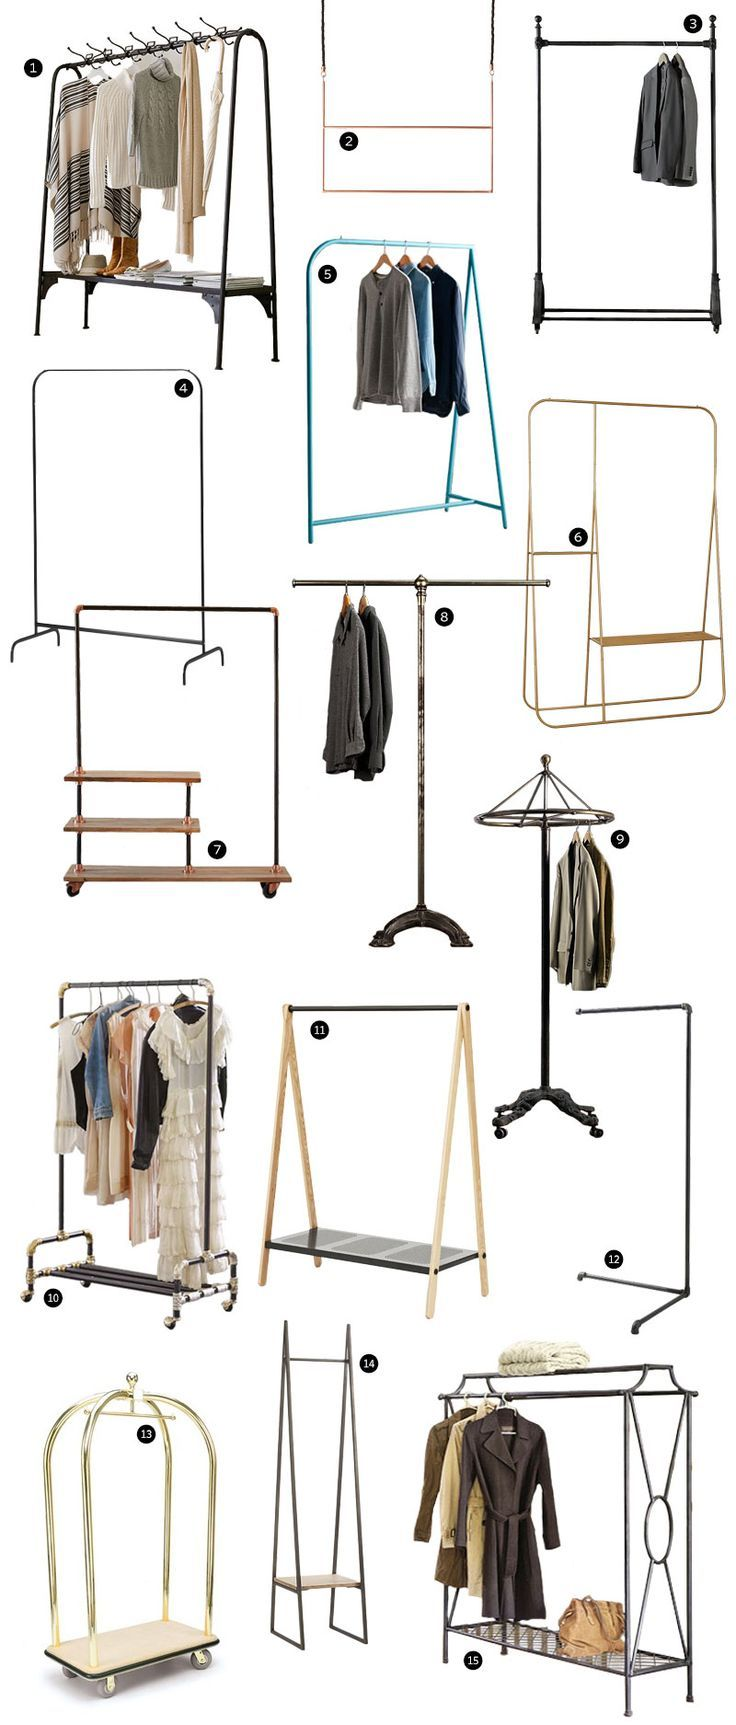 Garment racks. Coat racks. Oh, the multitude of racks I have looked at! Here's what happened. The bedroom closet had an Intermetro rolling garment rack setup for double hanging when we moved …